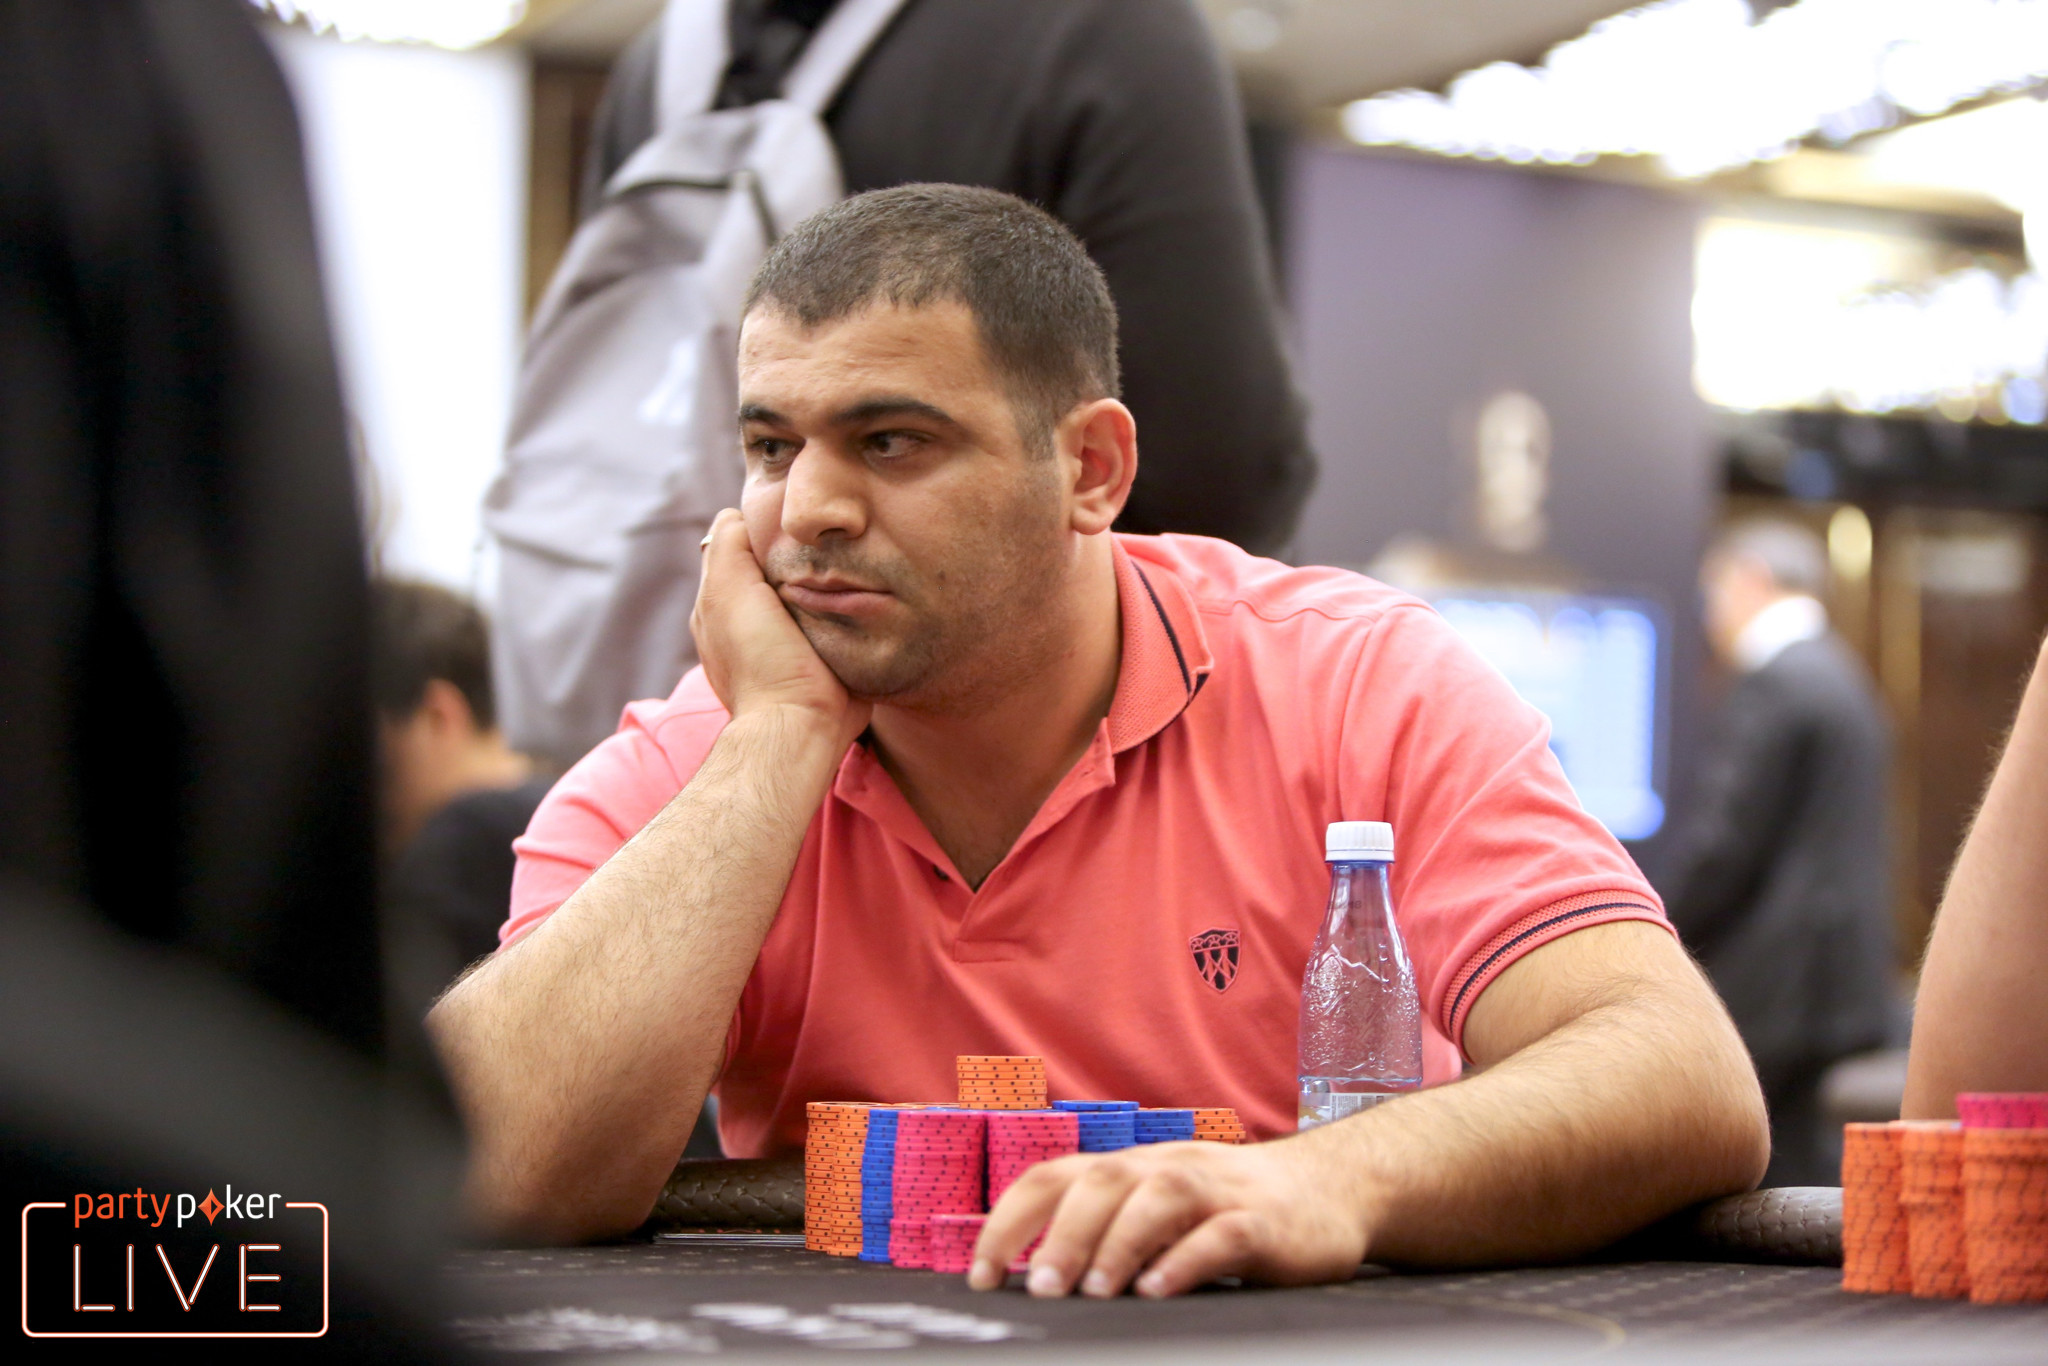 Gor Kazaryan Leads Into Day 4 Of Partypoker Live Millions